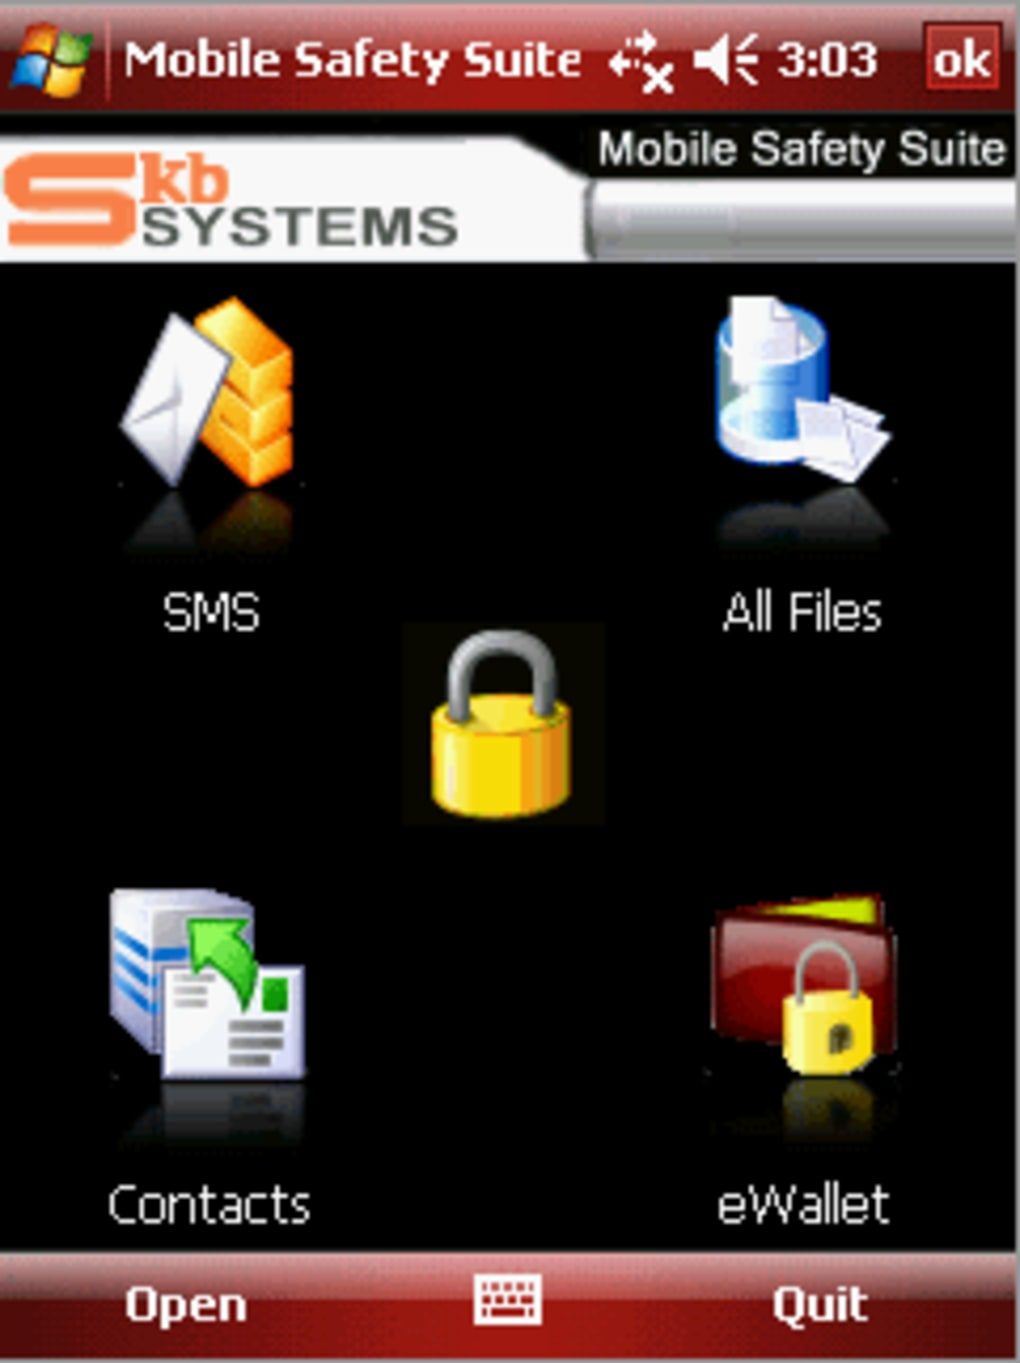 Skb Mobile Safety Suite - All in One